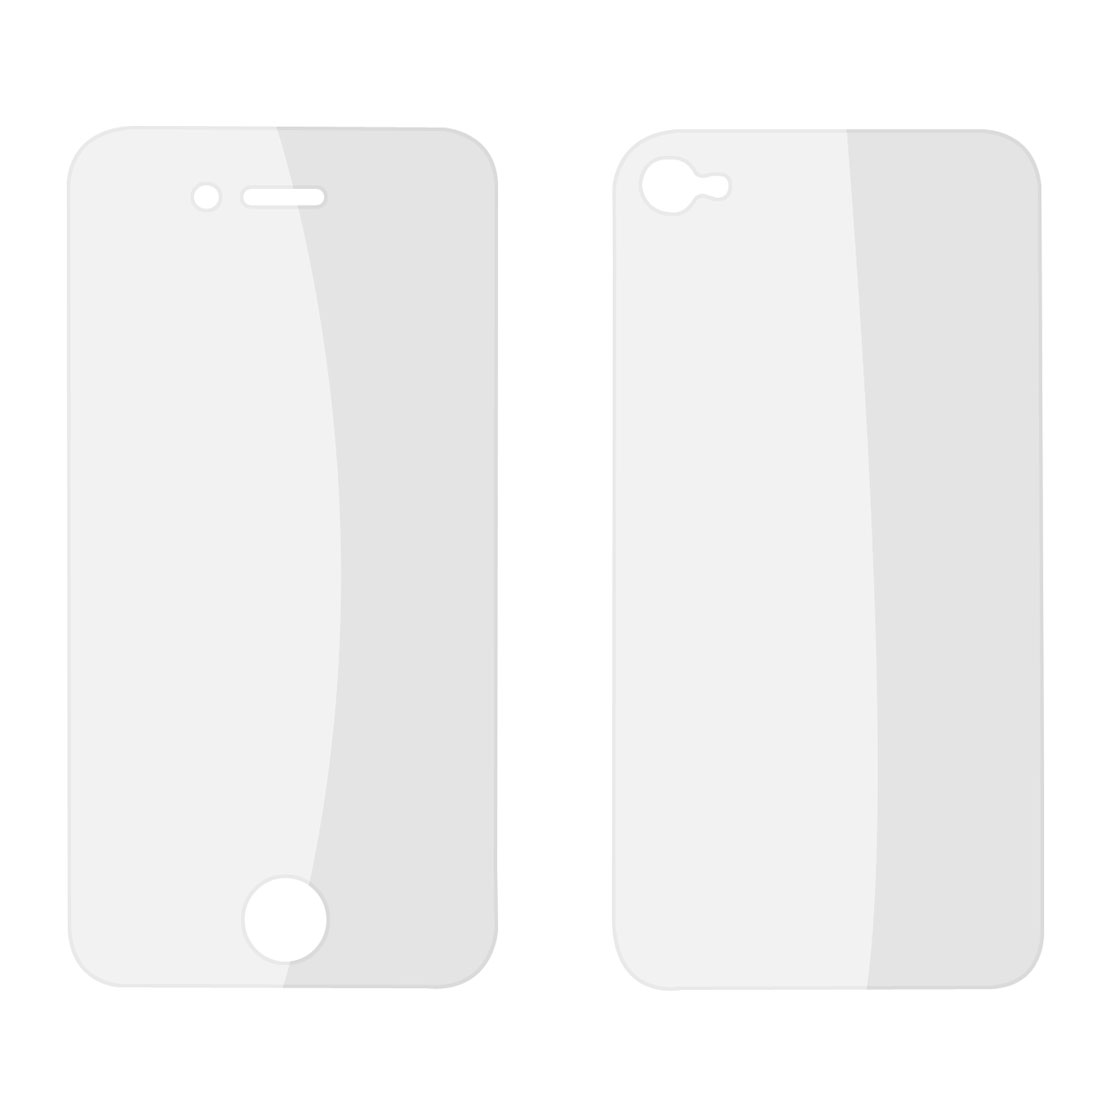 Front Back Transparent Matte LCD Screen Guard for iPhone 4 4G 4S 4GS